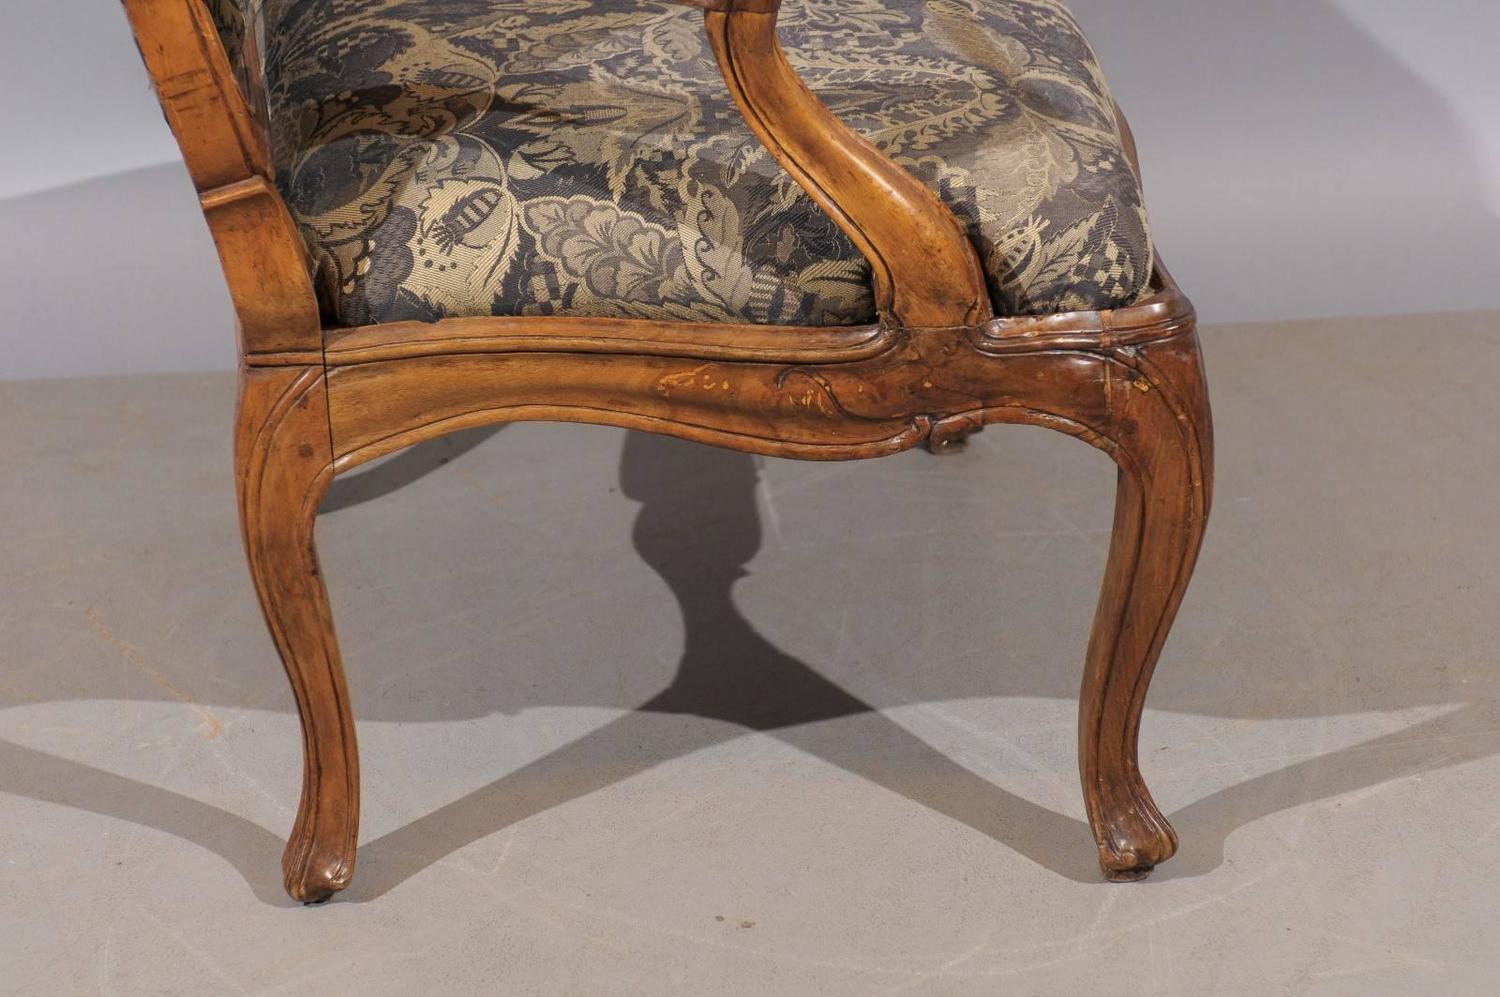 Fauteuils Customisés 18th Century French Regence Fauteuil Au Chasse In Walnut